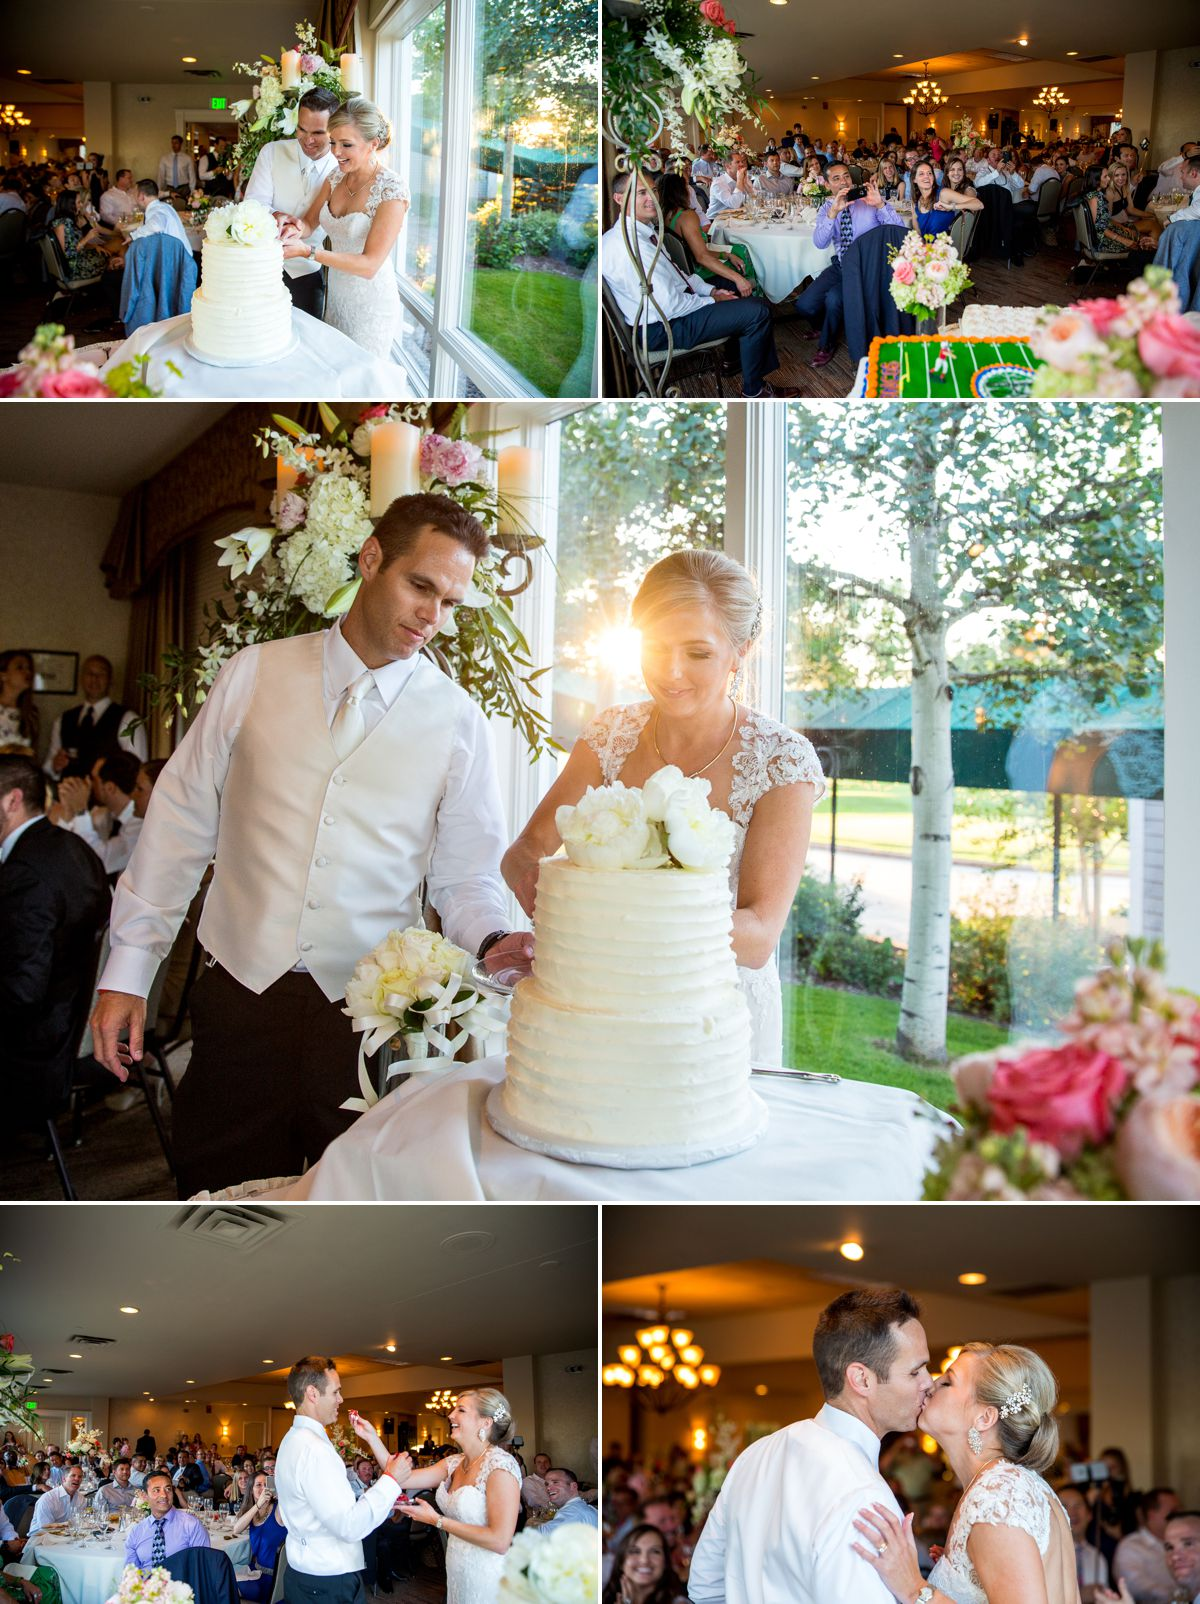 Gorgeous lighting just as the sun started to set during their cake cutting.